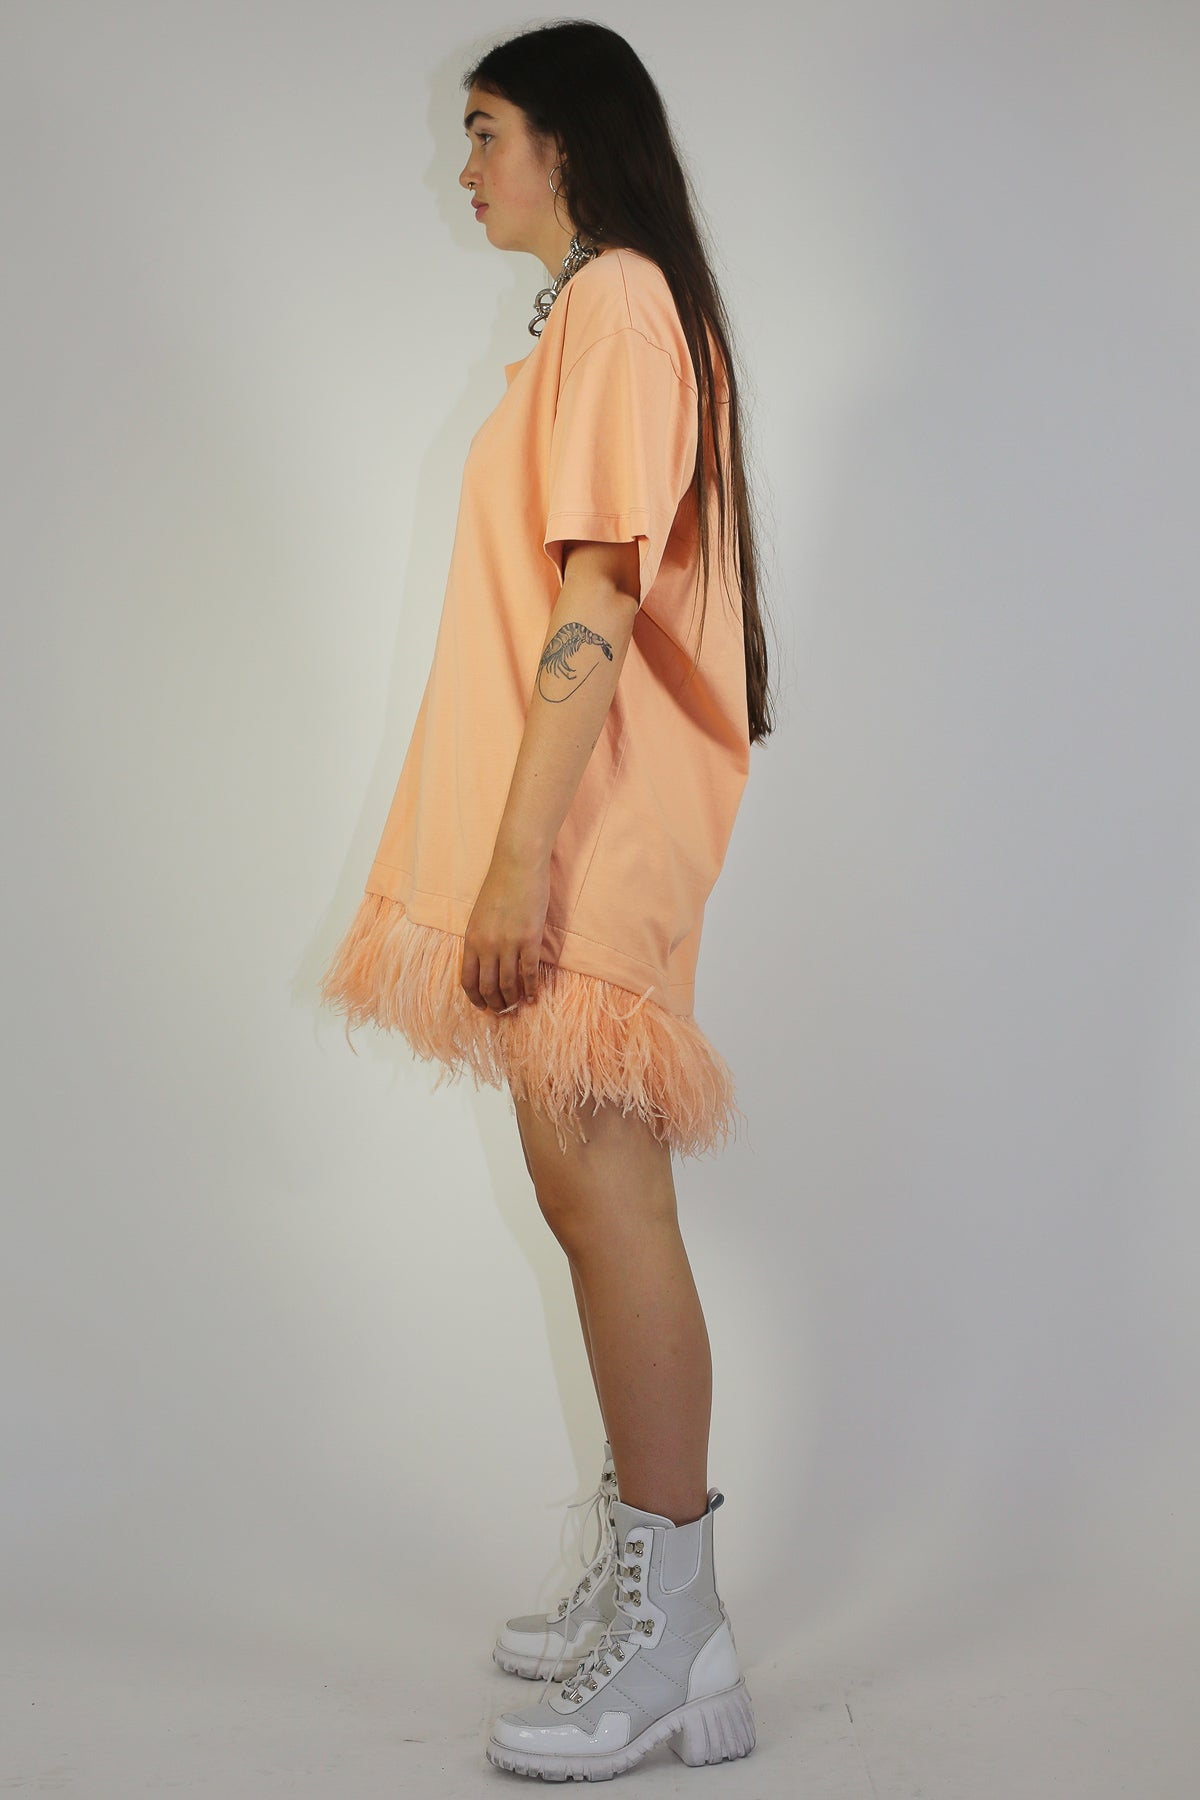 FEATHER HEM TOP IN PINK - marques-almeida-dev